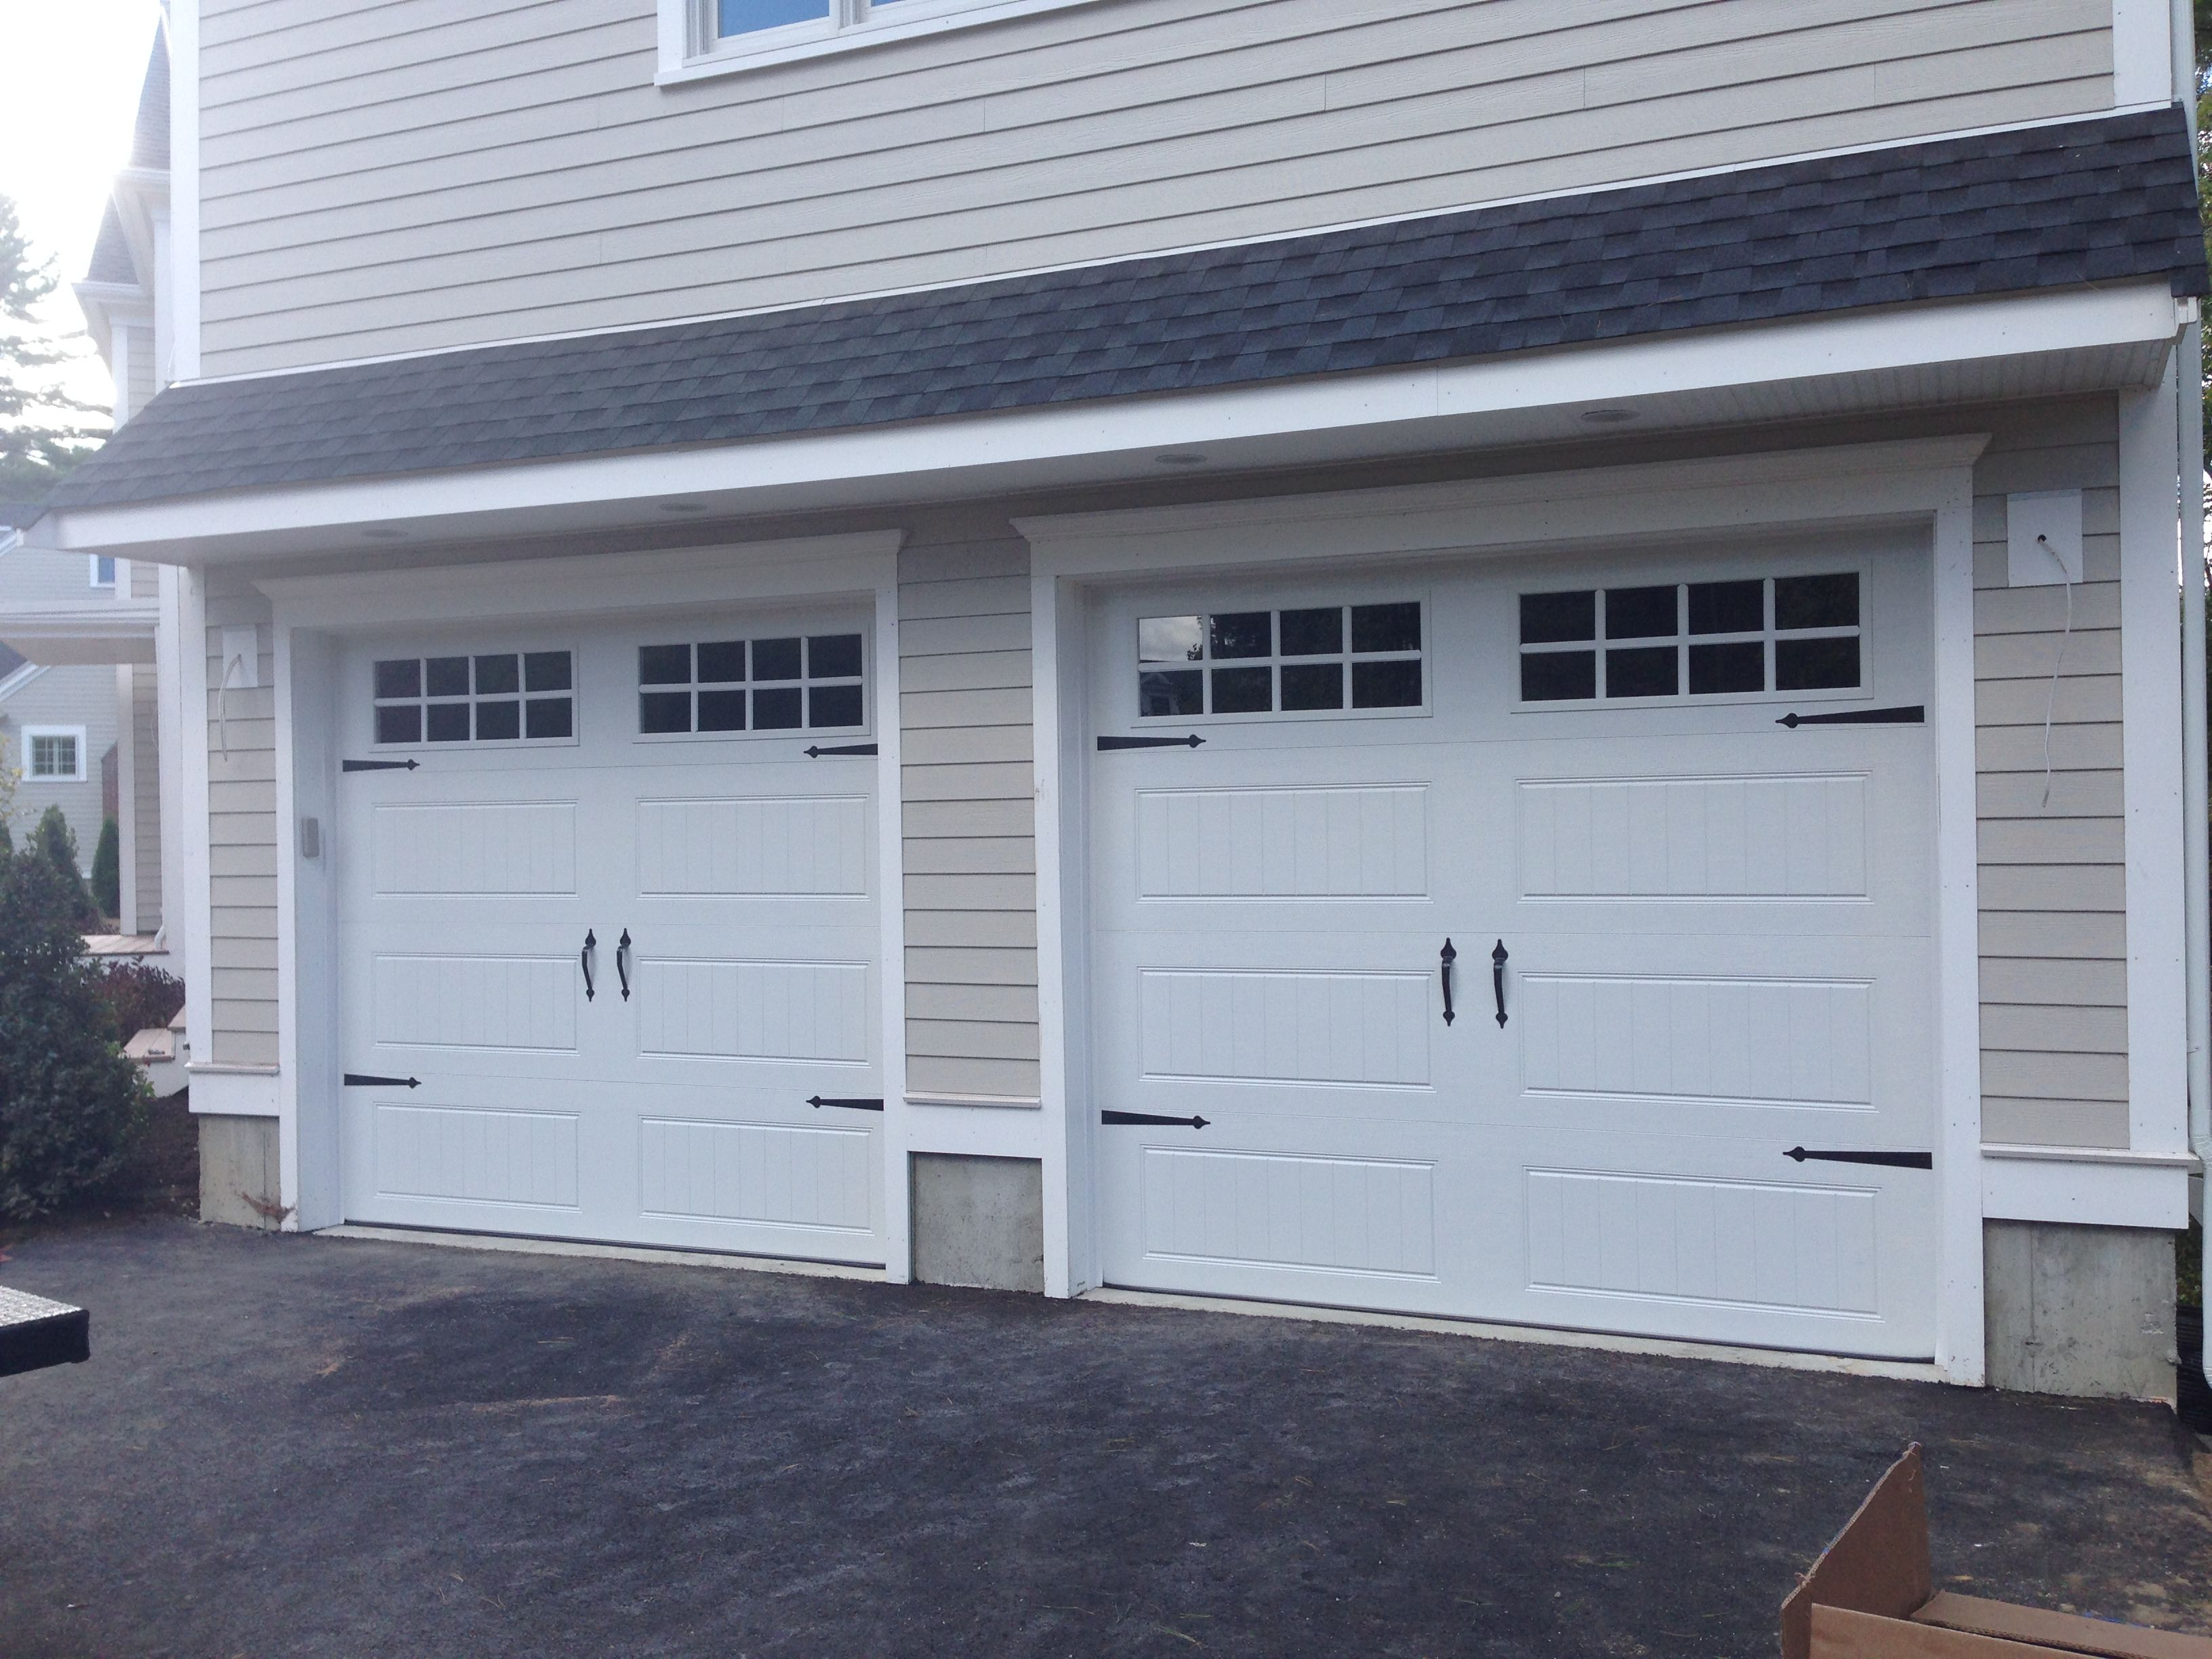 C.H.I. Overhead Doors Model 5916 Long Panel, In White With Stockton Glass.  Call Us At 800 790 1123 Or Visit Americasgaragedoors.com For Installation  And ...